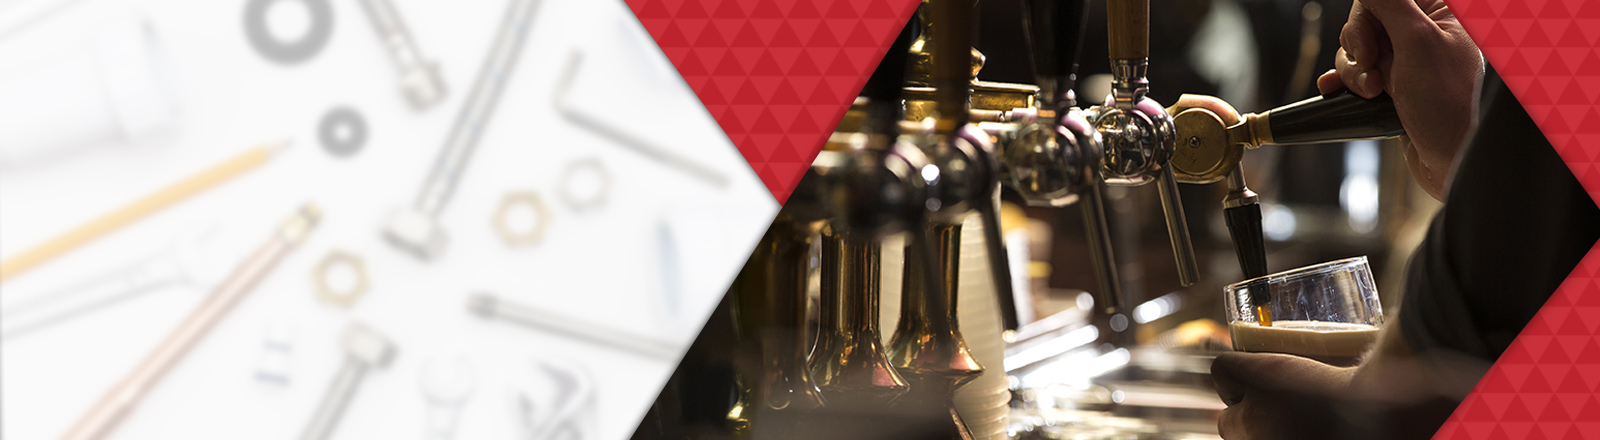 Bars & Pubs Plumbing Services